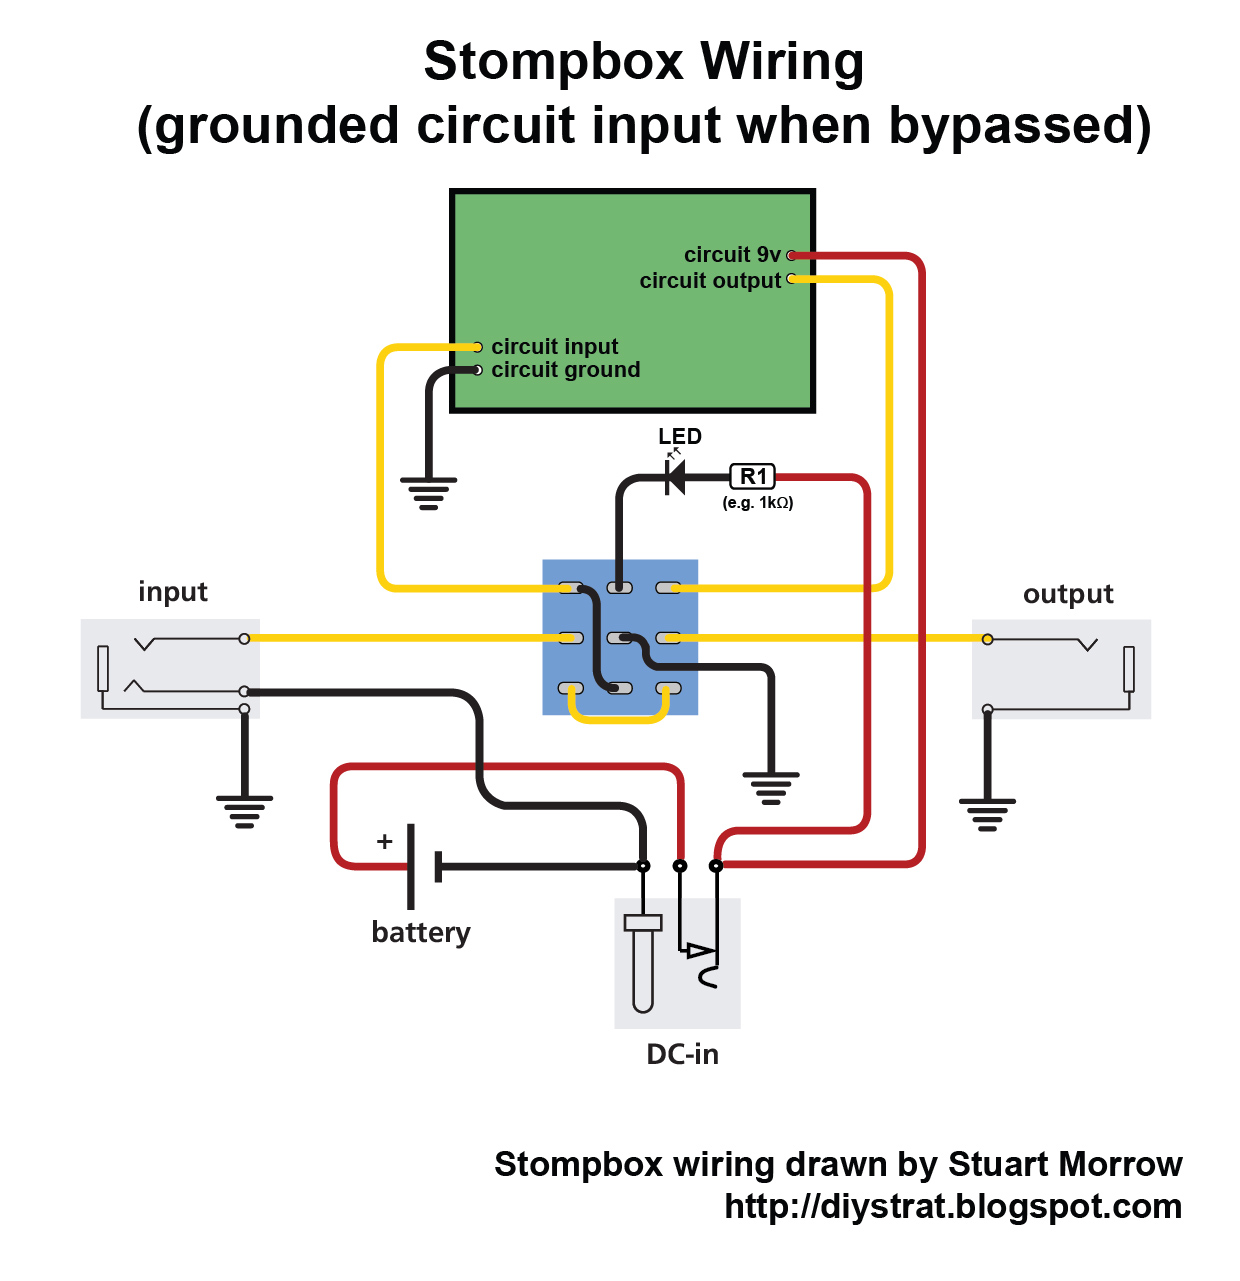 hight resolution of stomp box wiring harness wiring diagrams stomp box wiring harness wiring diagrams schema wiring harness diagram